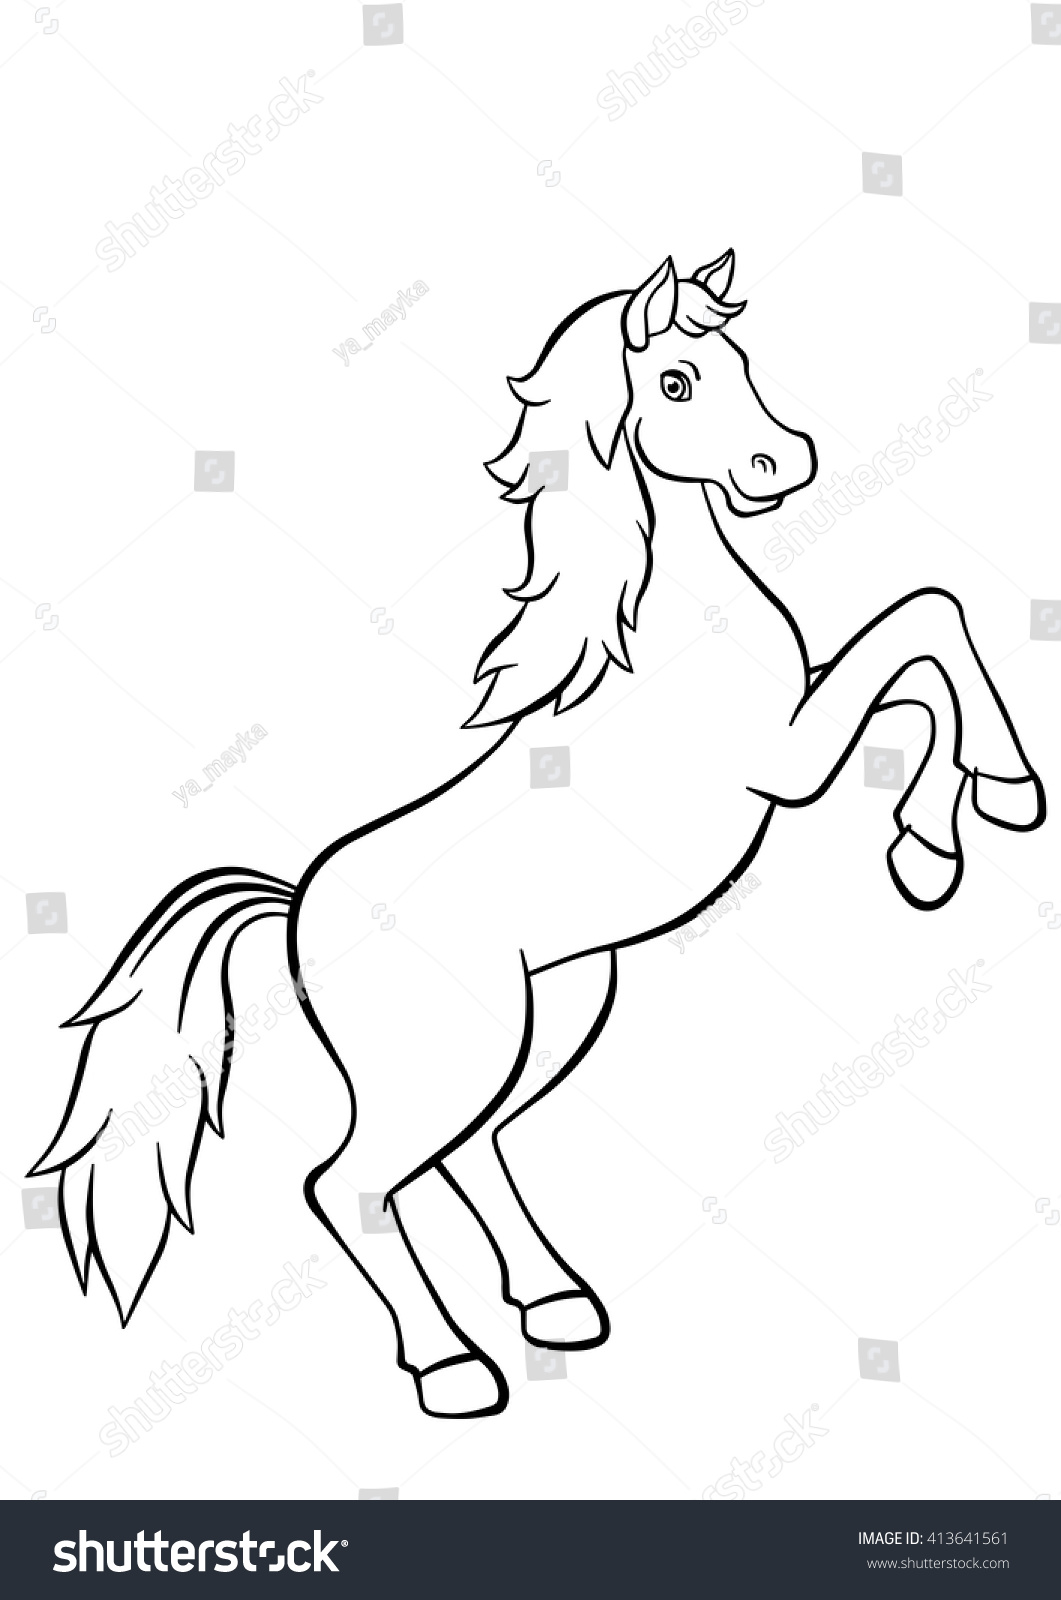 Coloring Pages Animals Cute Horse Jumps And Smiles